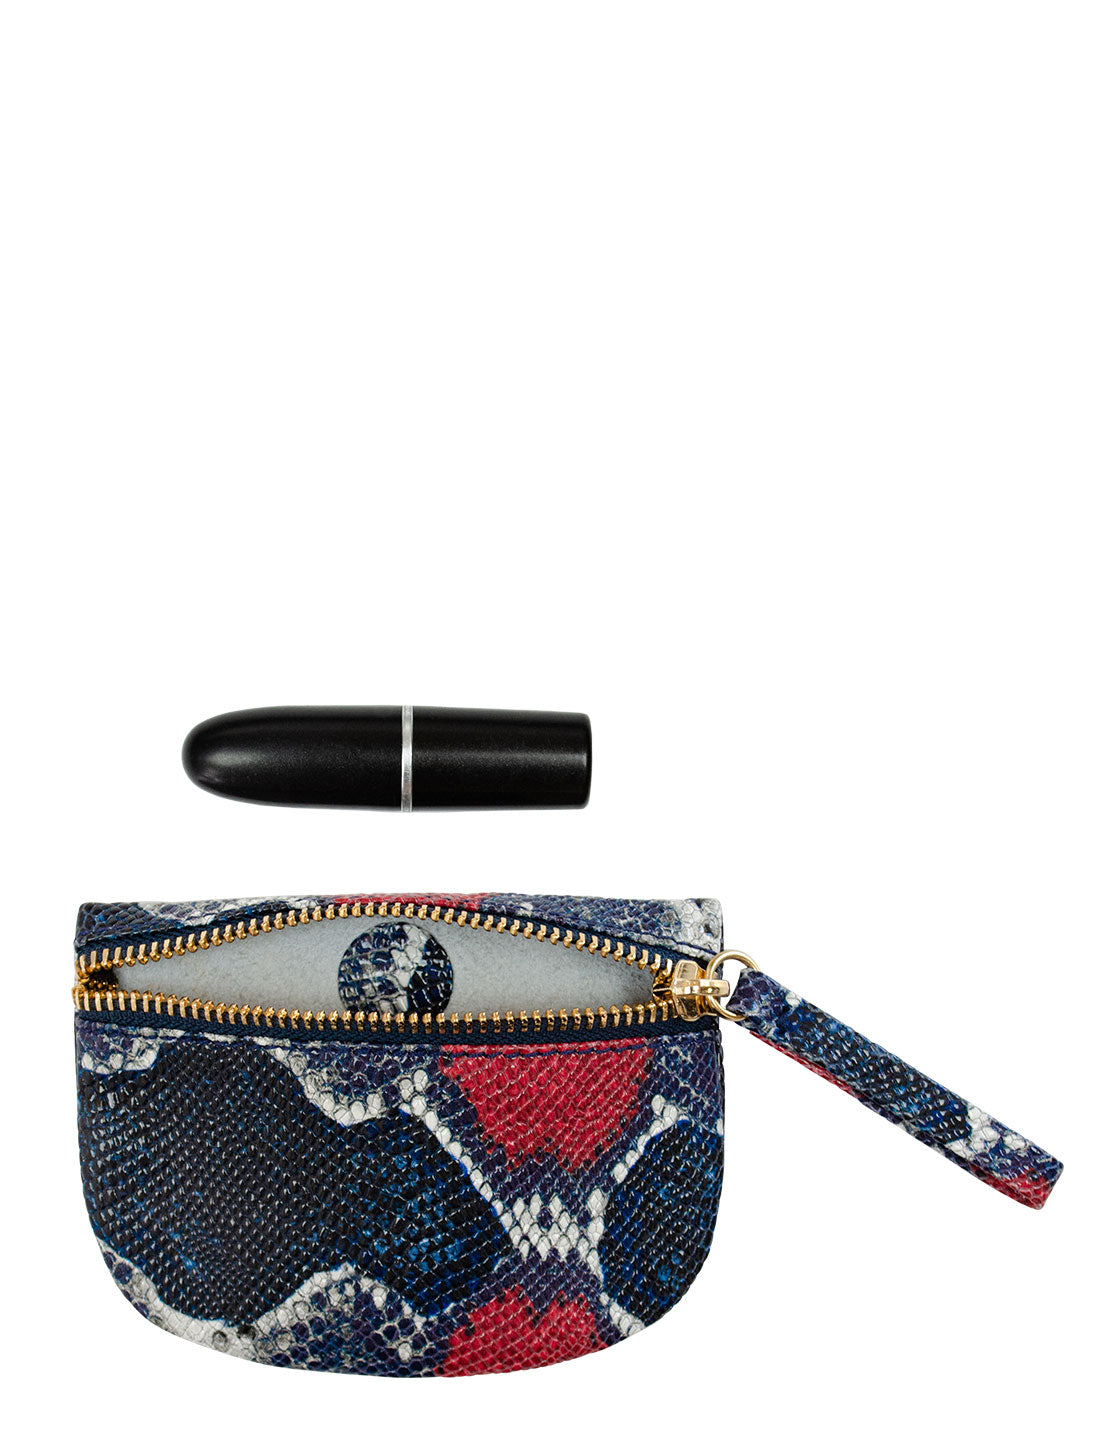 MVP Pouch in Red/Navy Multi Python